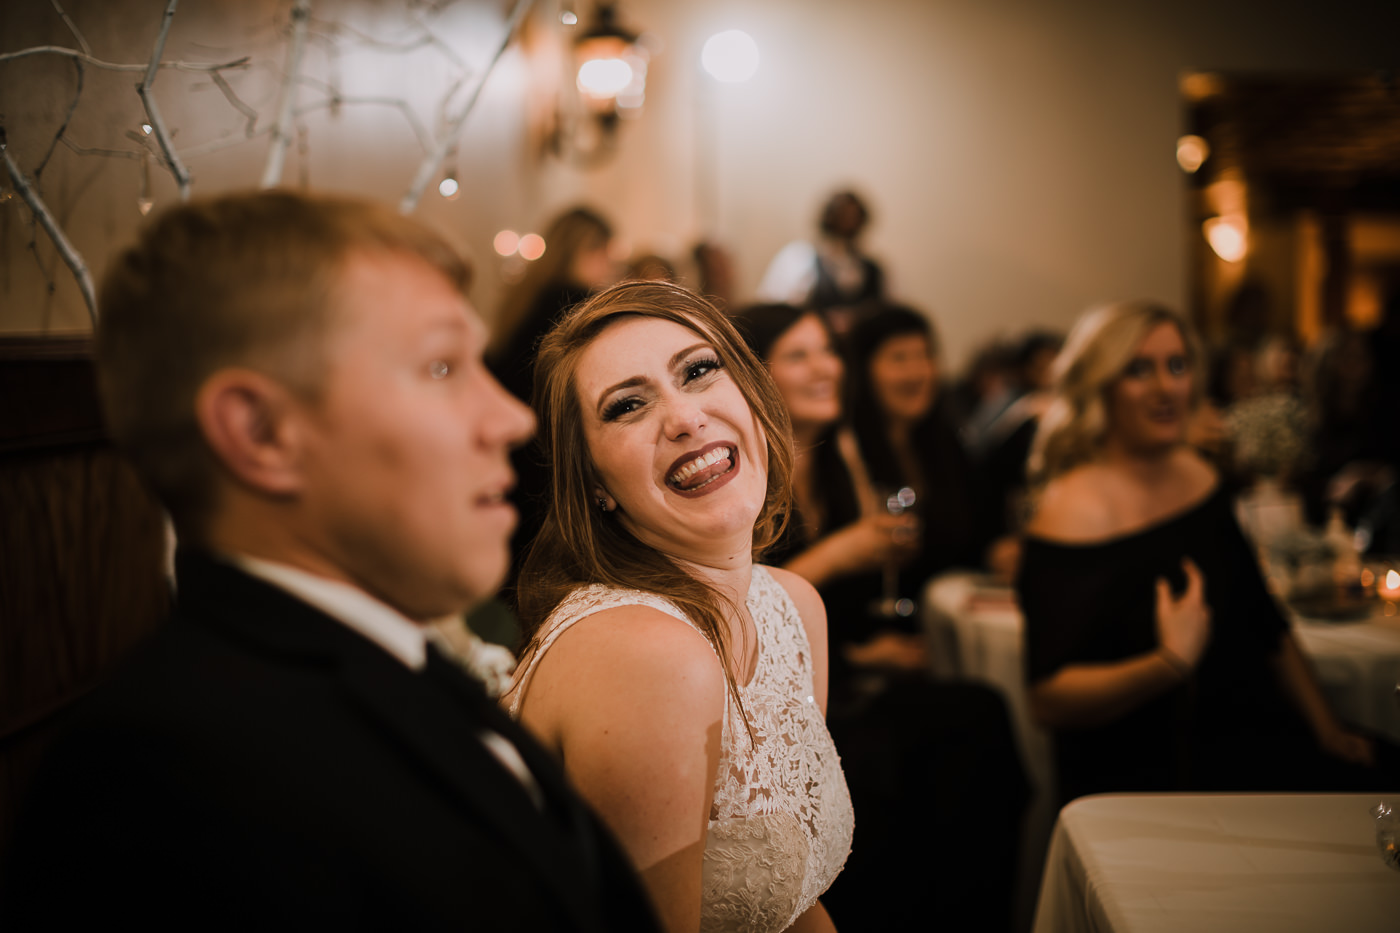 rogers.arkansas.weddingphotos.©2018mileswittboyer-35.jpg